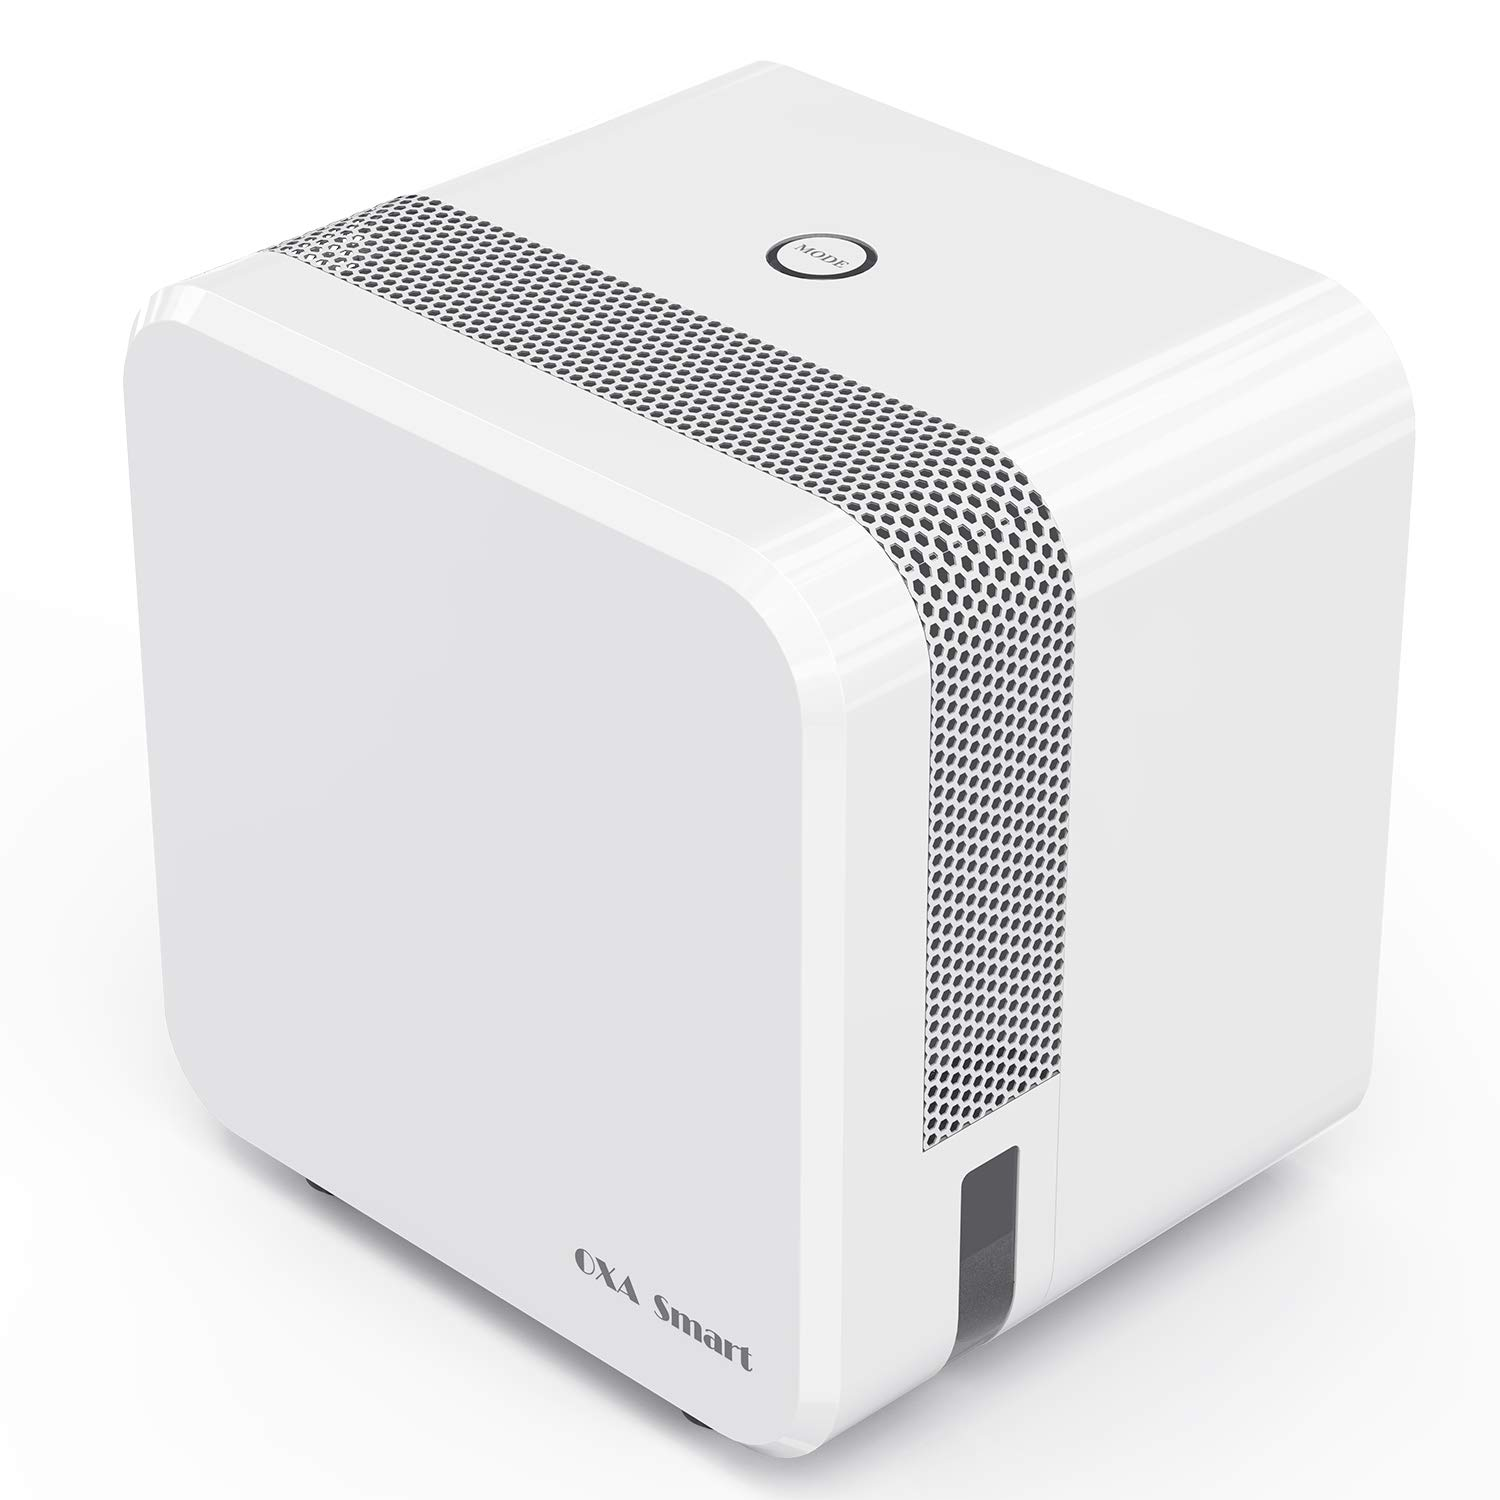 Electric Mini Dehumidifier for Home, 1200 Cubic Feet(215 sq ft), 22oz  Capacity Compact and Portable Small Dehumidifiers with Two Mode, Ultra  Quiet